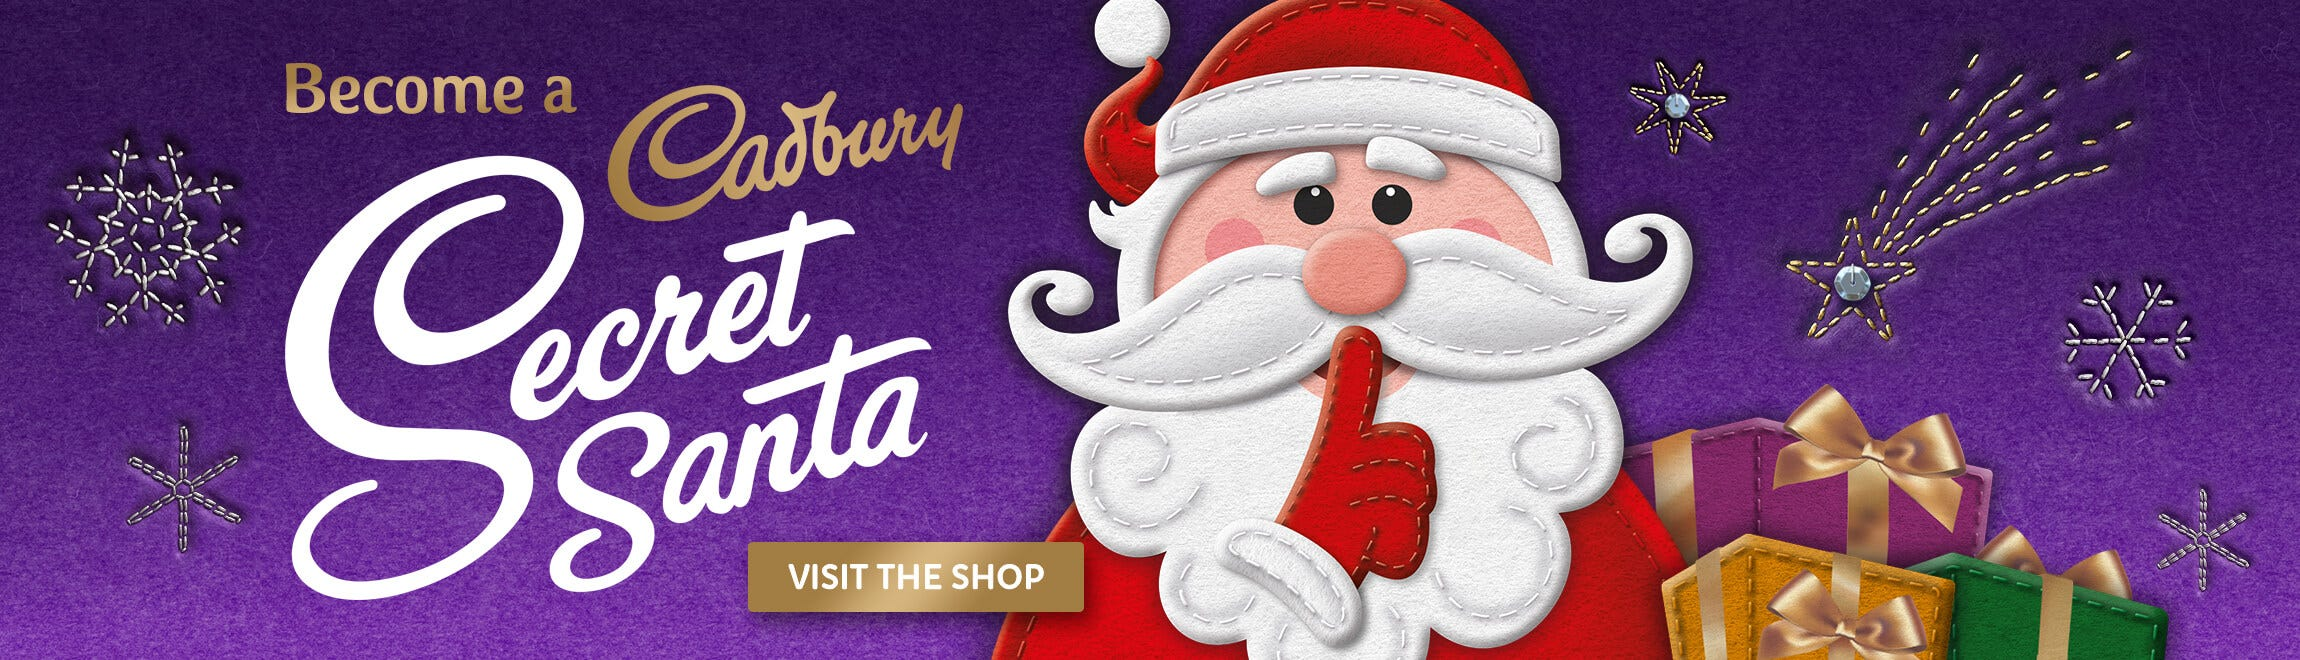 Cadbury Secret Santa Shop